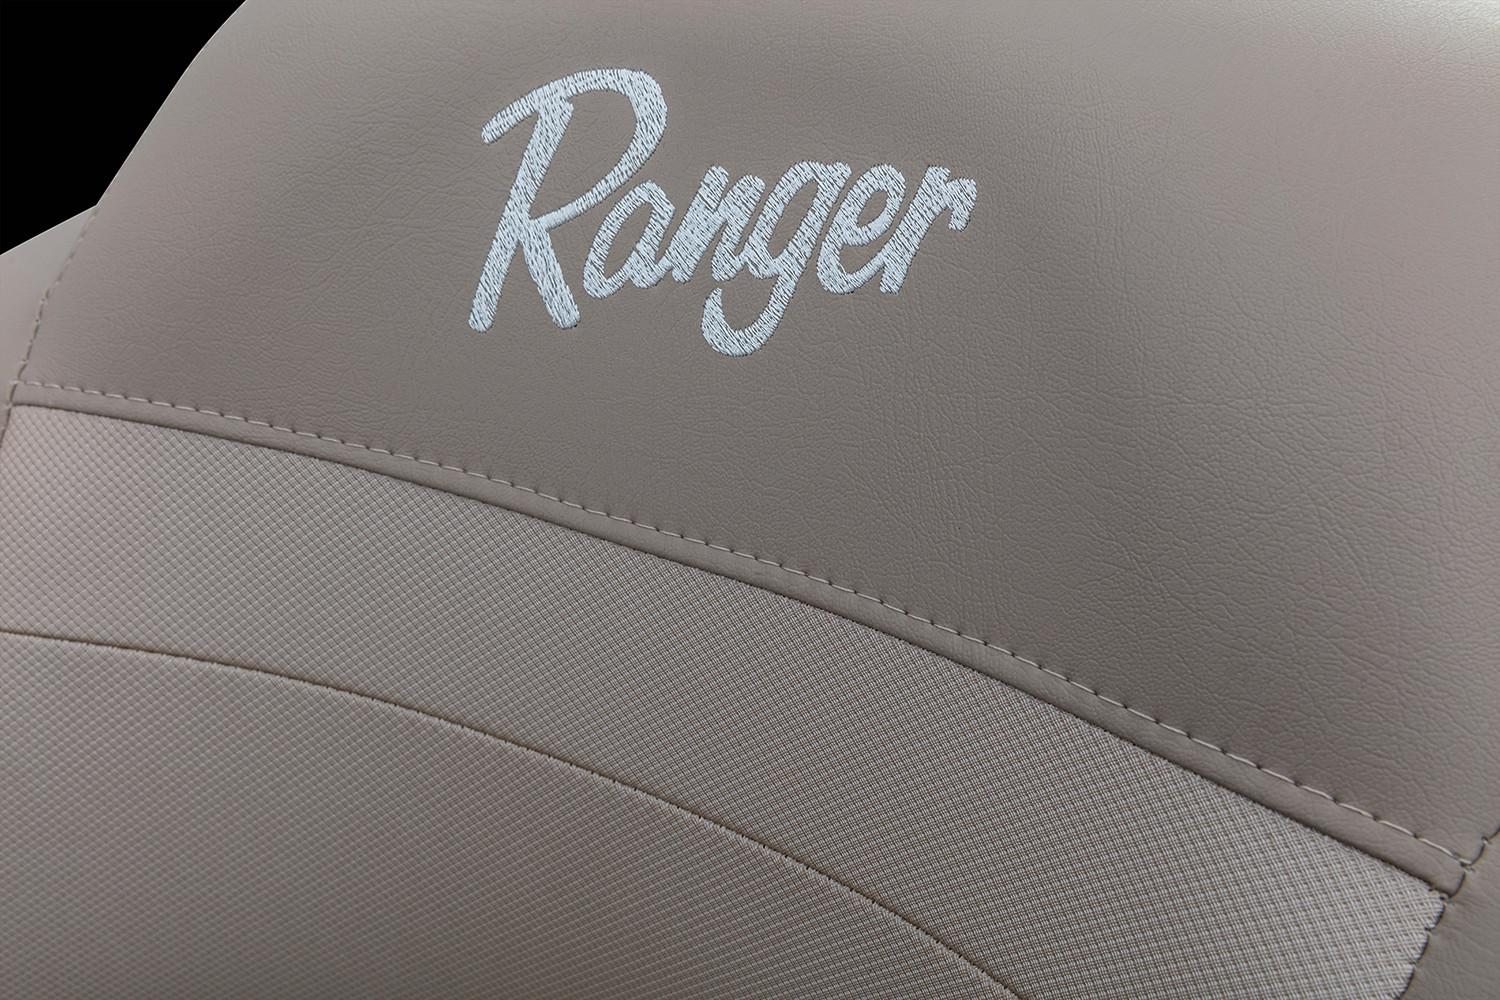 2020 Ranger Reata 200F in Eastland, Texas